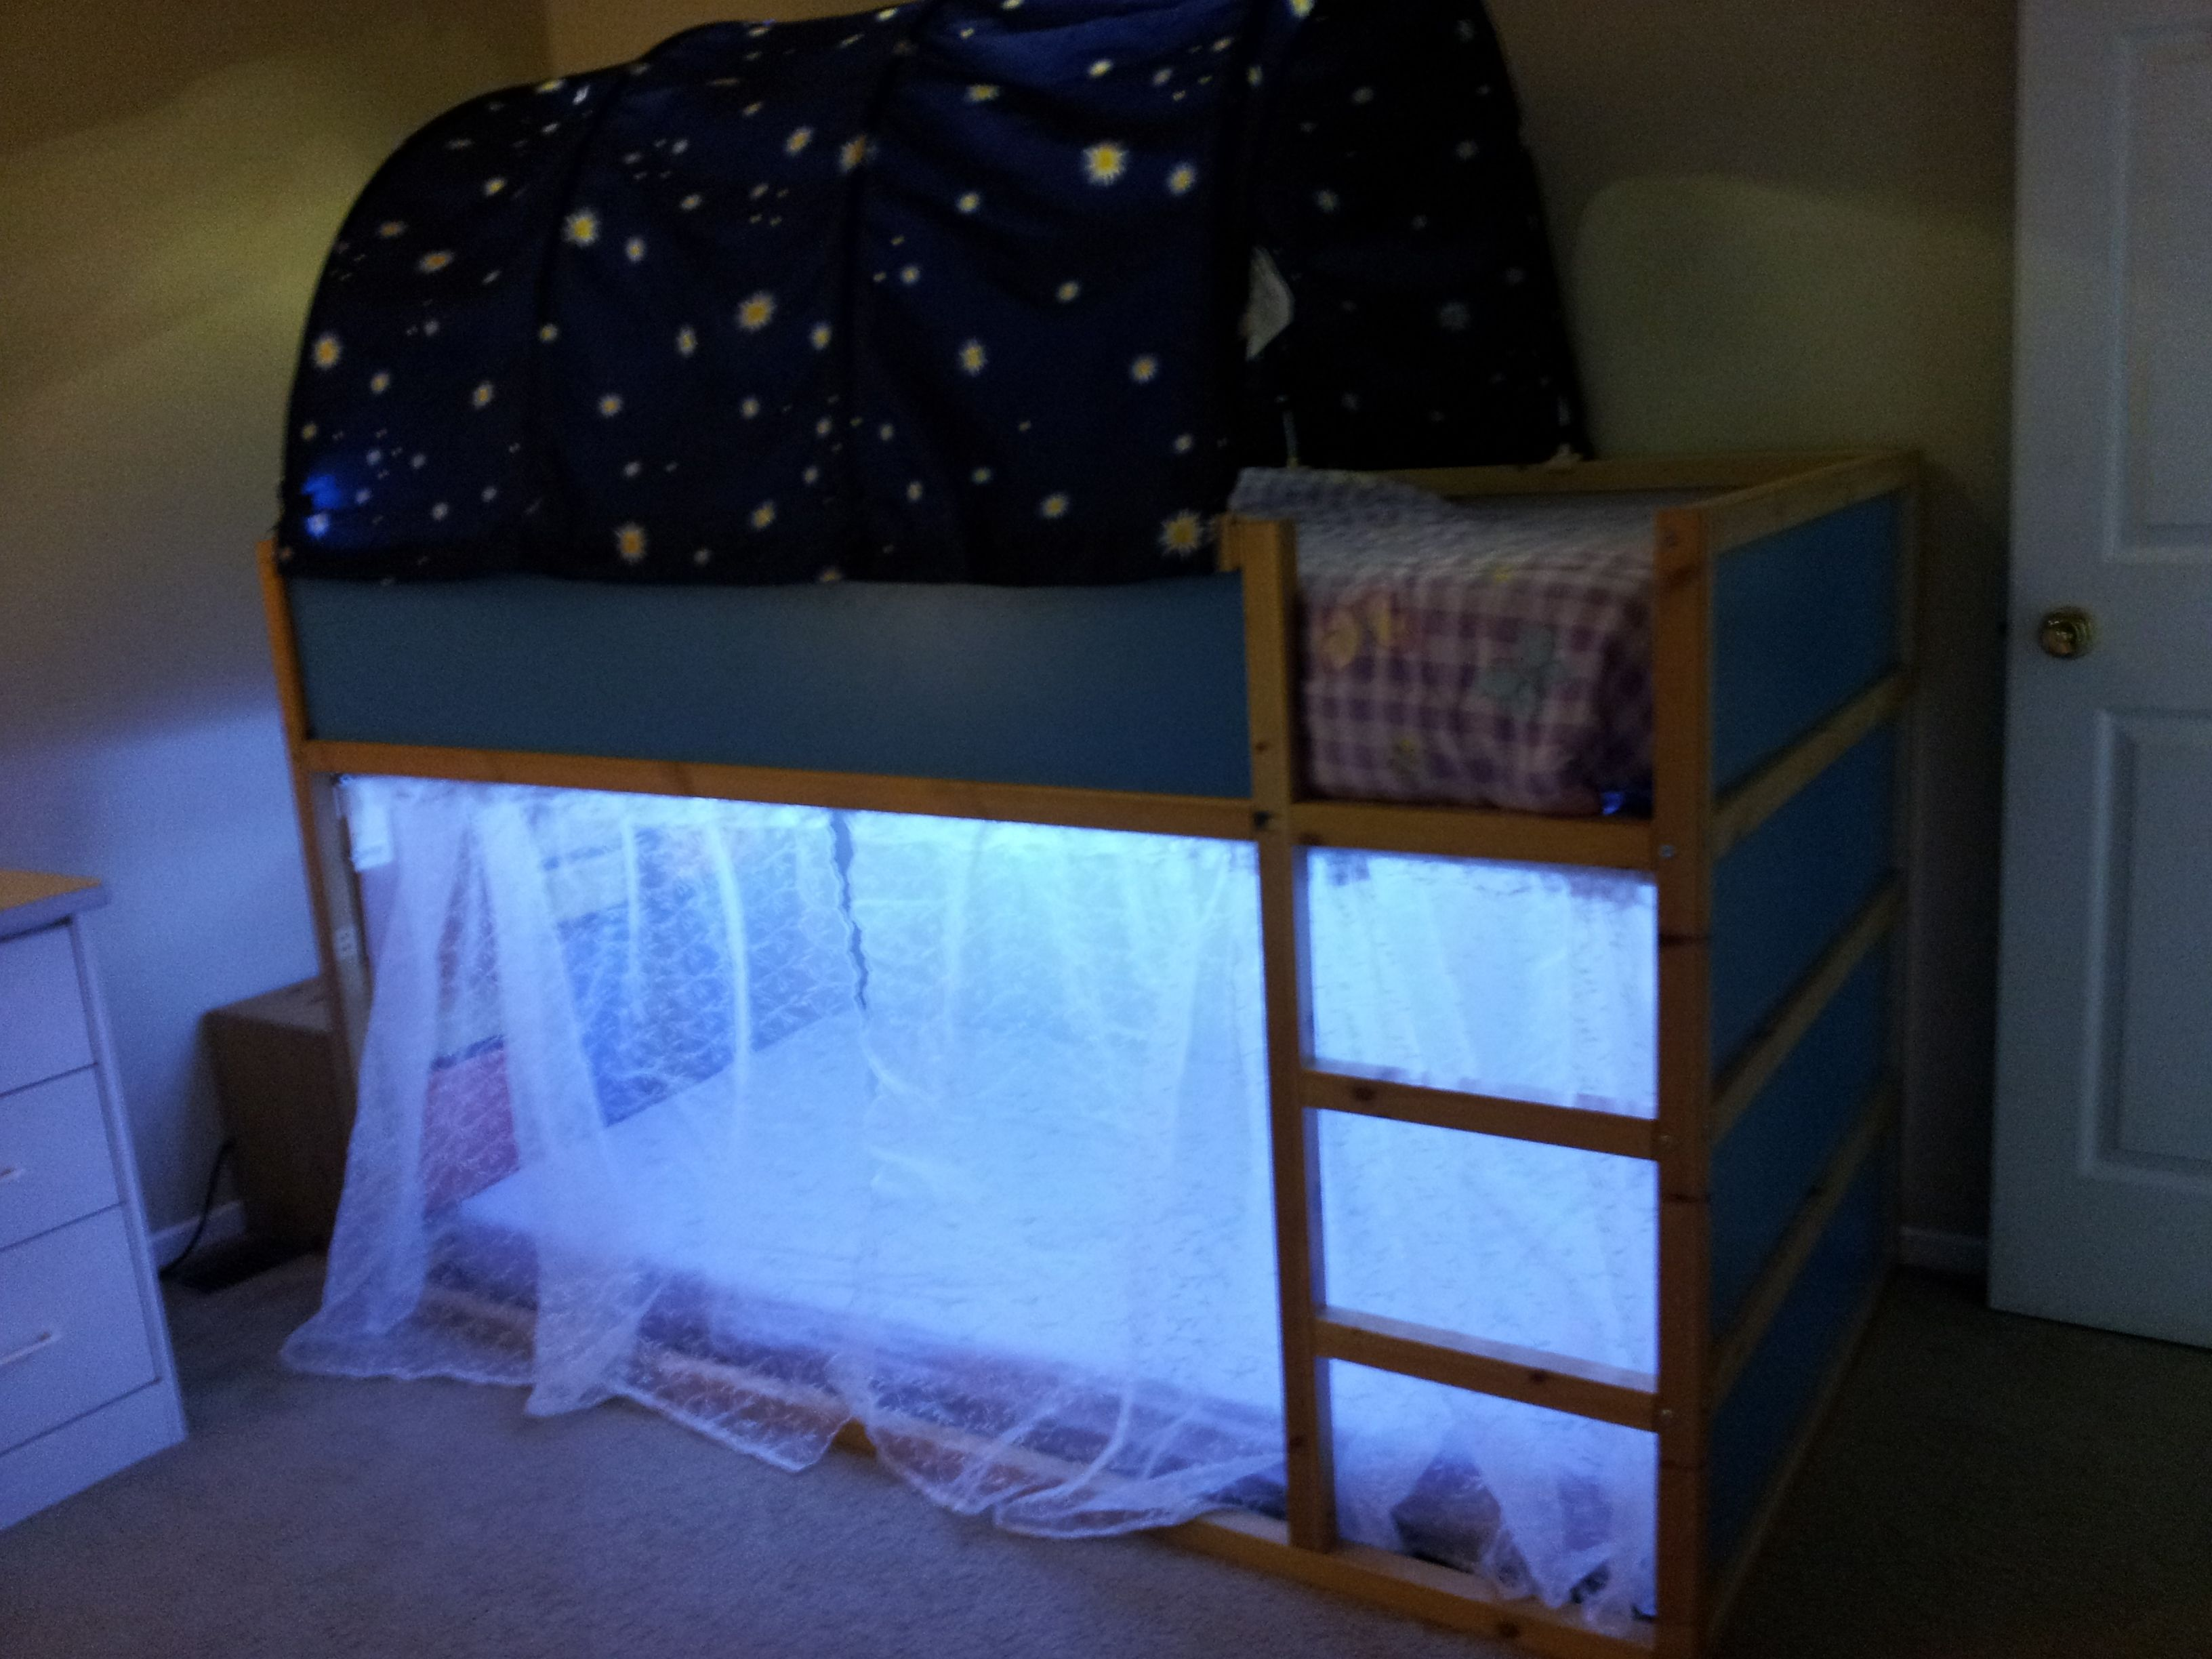 Kura bed with a Trofast unit for stairs added some curtains and